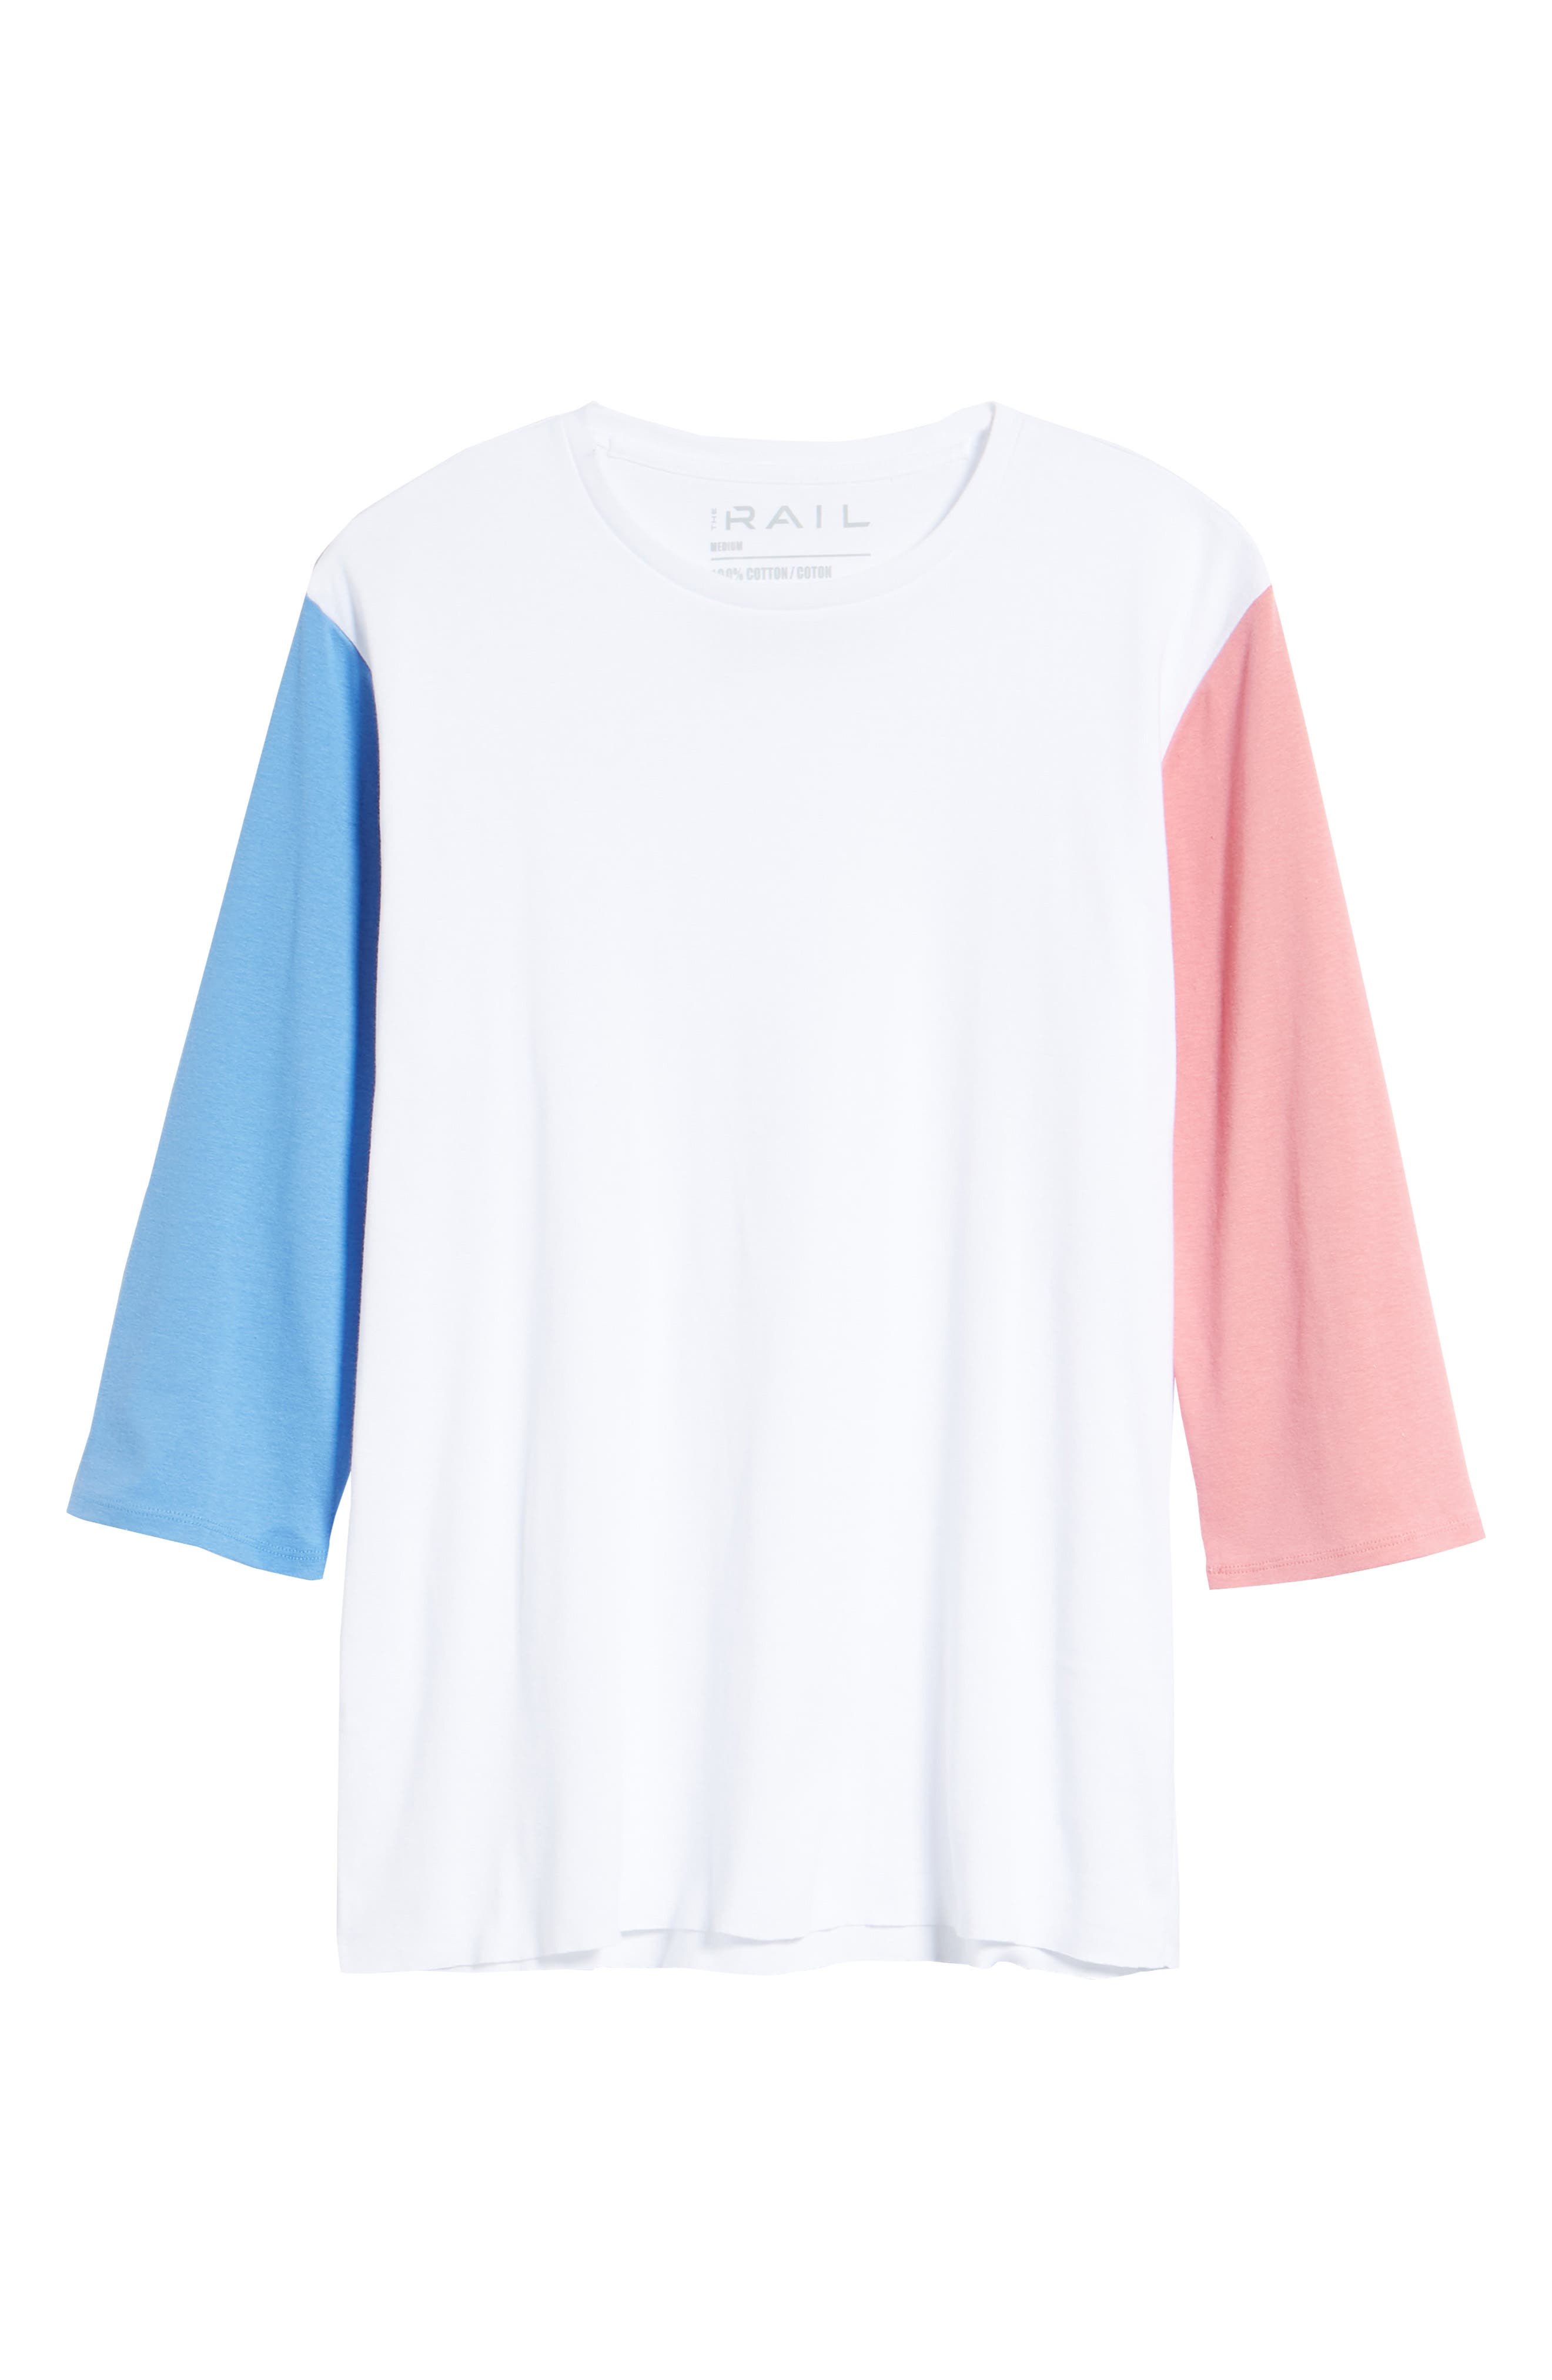 Contrast Sleeve T-Shirt,                             Alternate thumbnail 6, color,                             White/ Pink / Blue